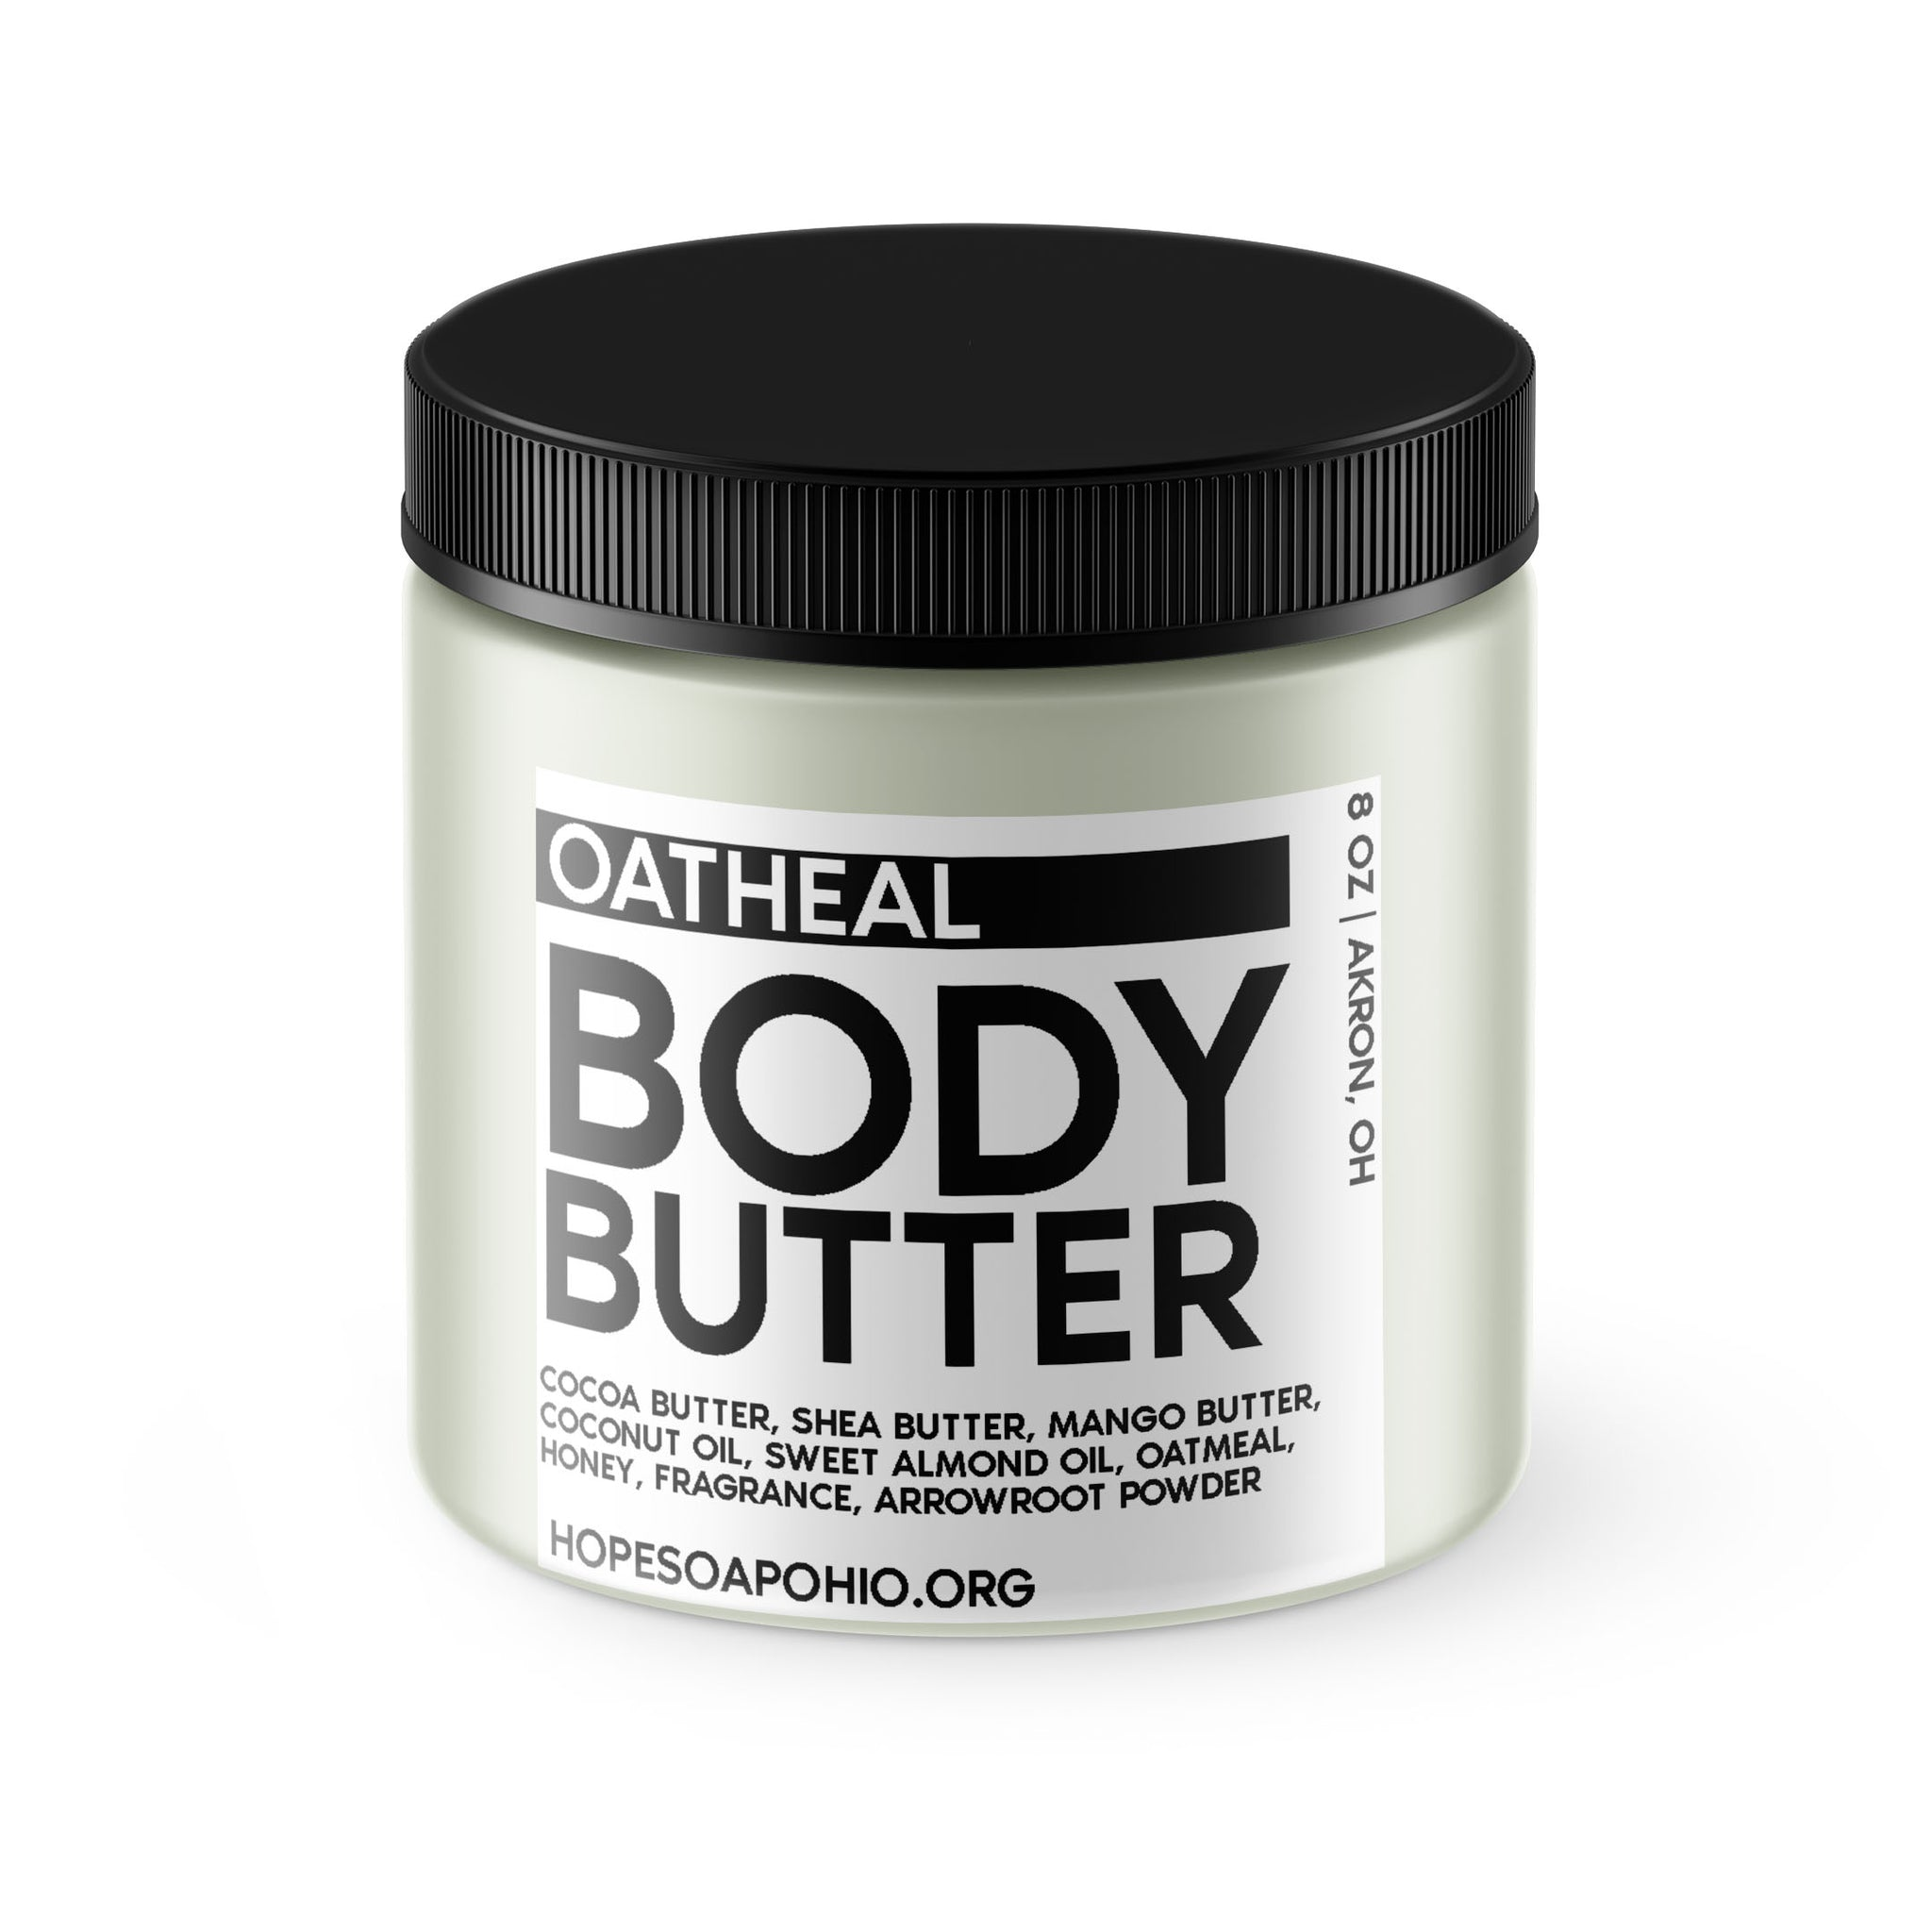 Body Butter - HOPESOAPOHIO